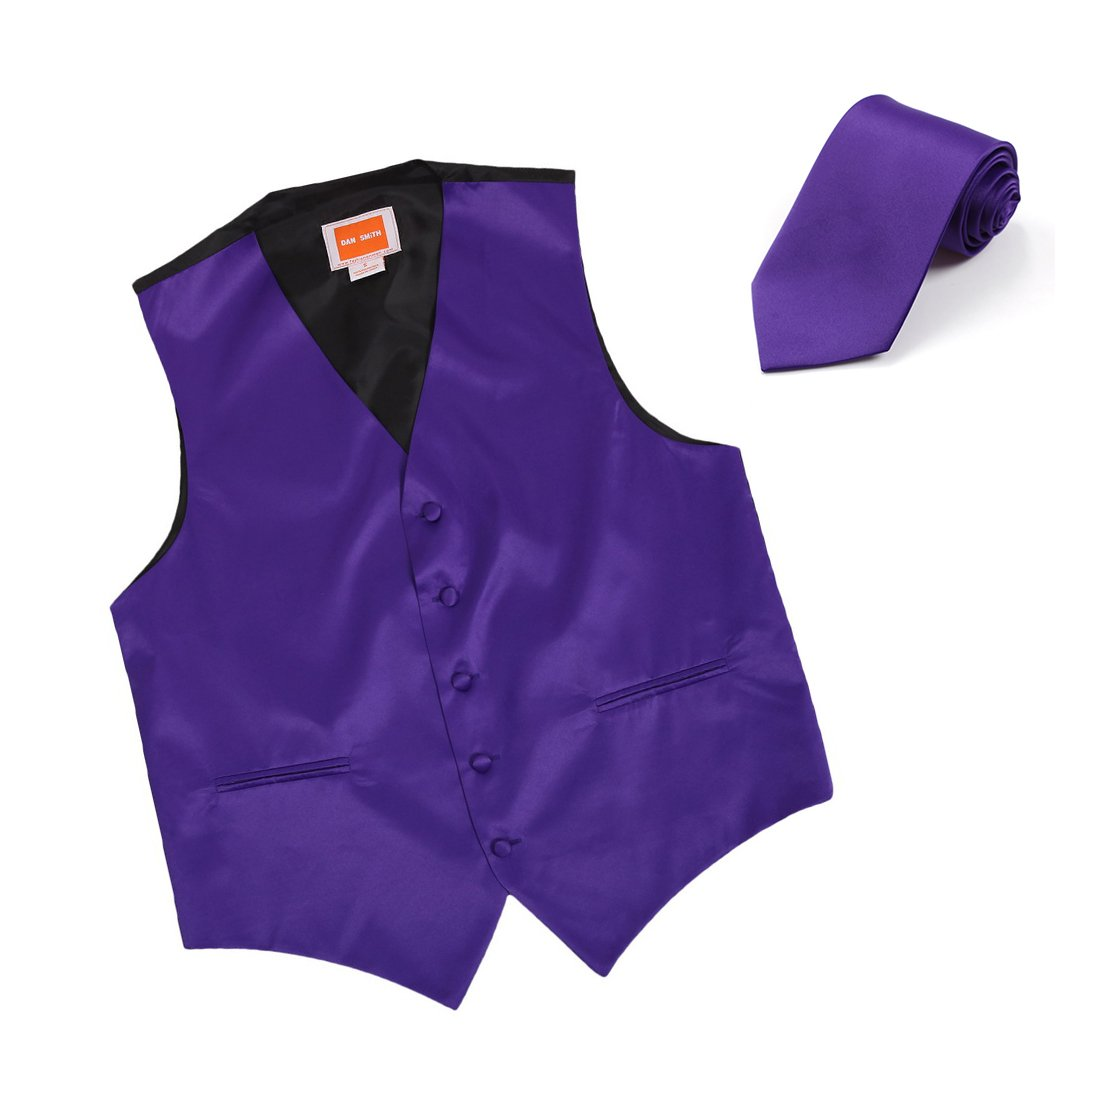 Dan Smith DGDE0002-L Dark Violet Plain Microfiber Husband Tuxedo Vests Satin for Wedding Vest Matching Neck Tie by